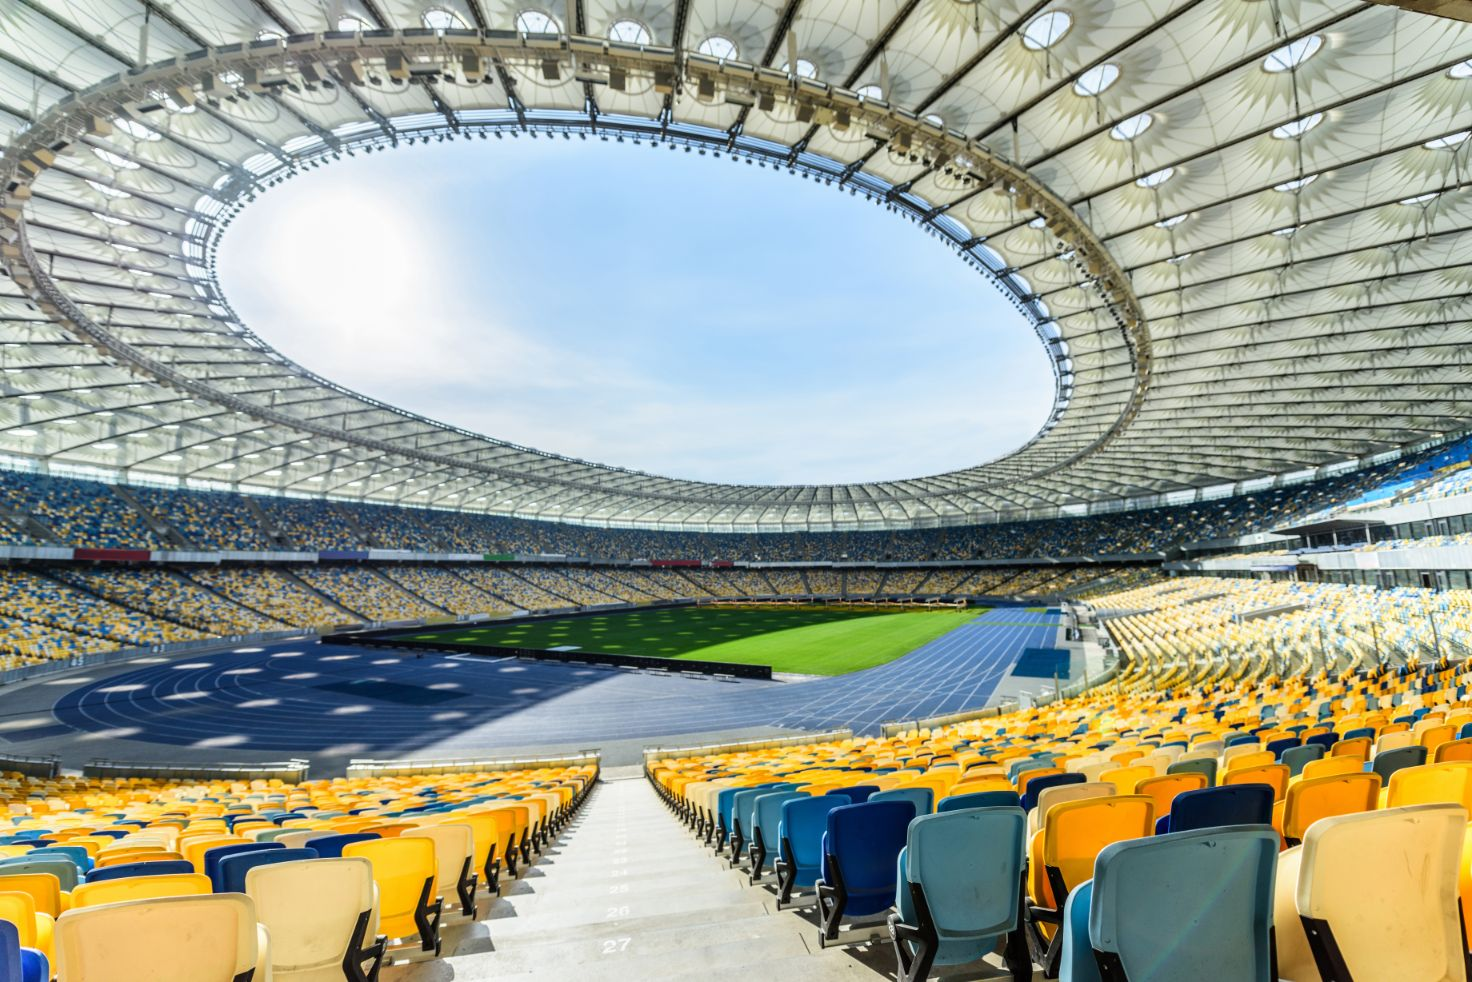 rows-of-yellow-and-blue-stadium-seats-on-soccer-fi-T7AKFMB (1)